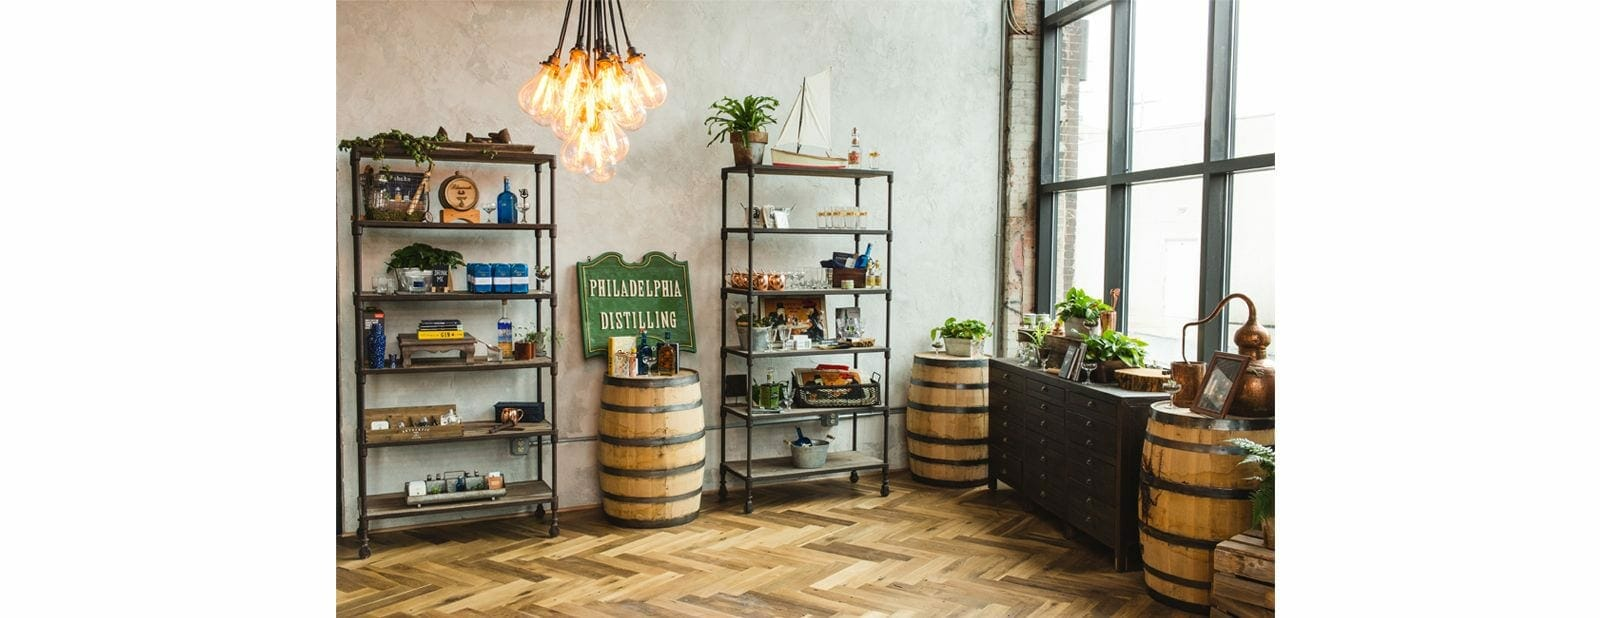 philadelphia distilling flooring